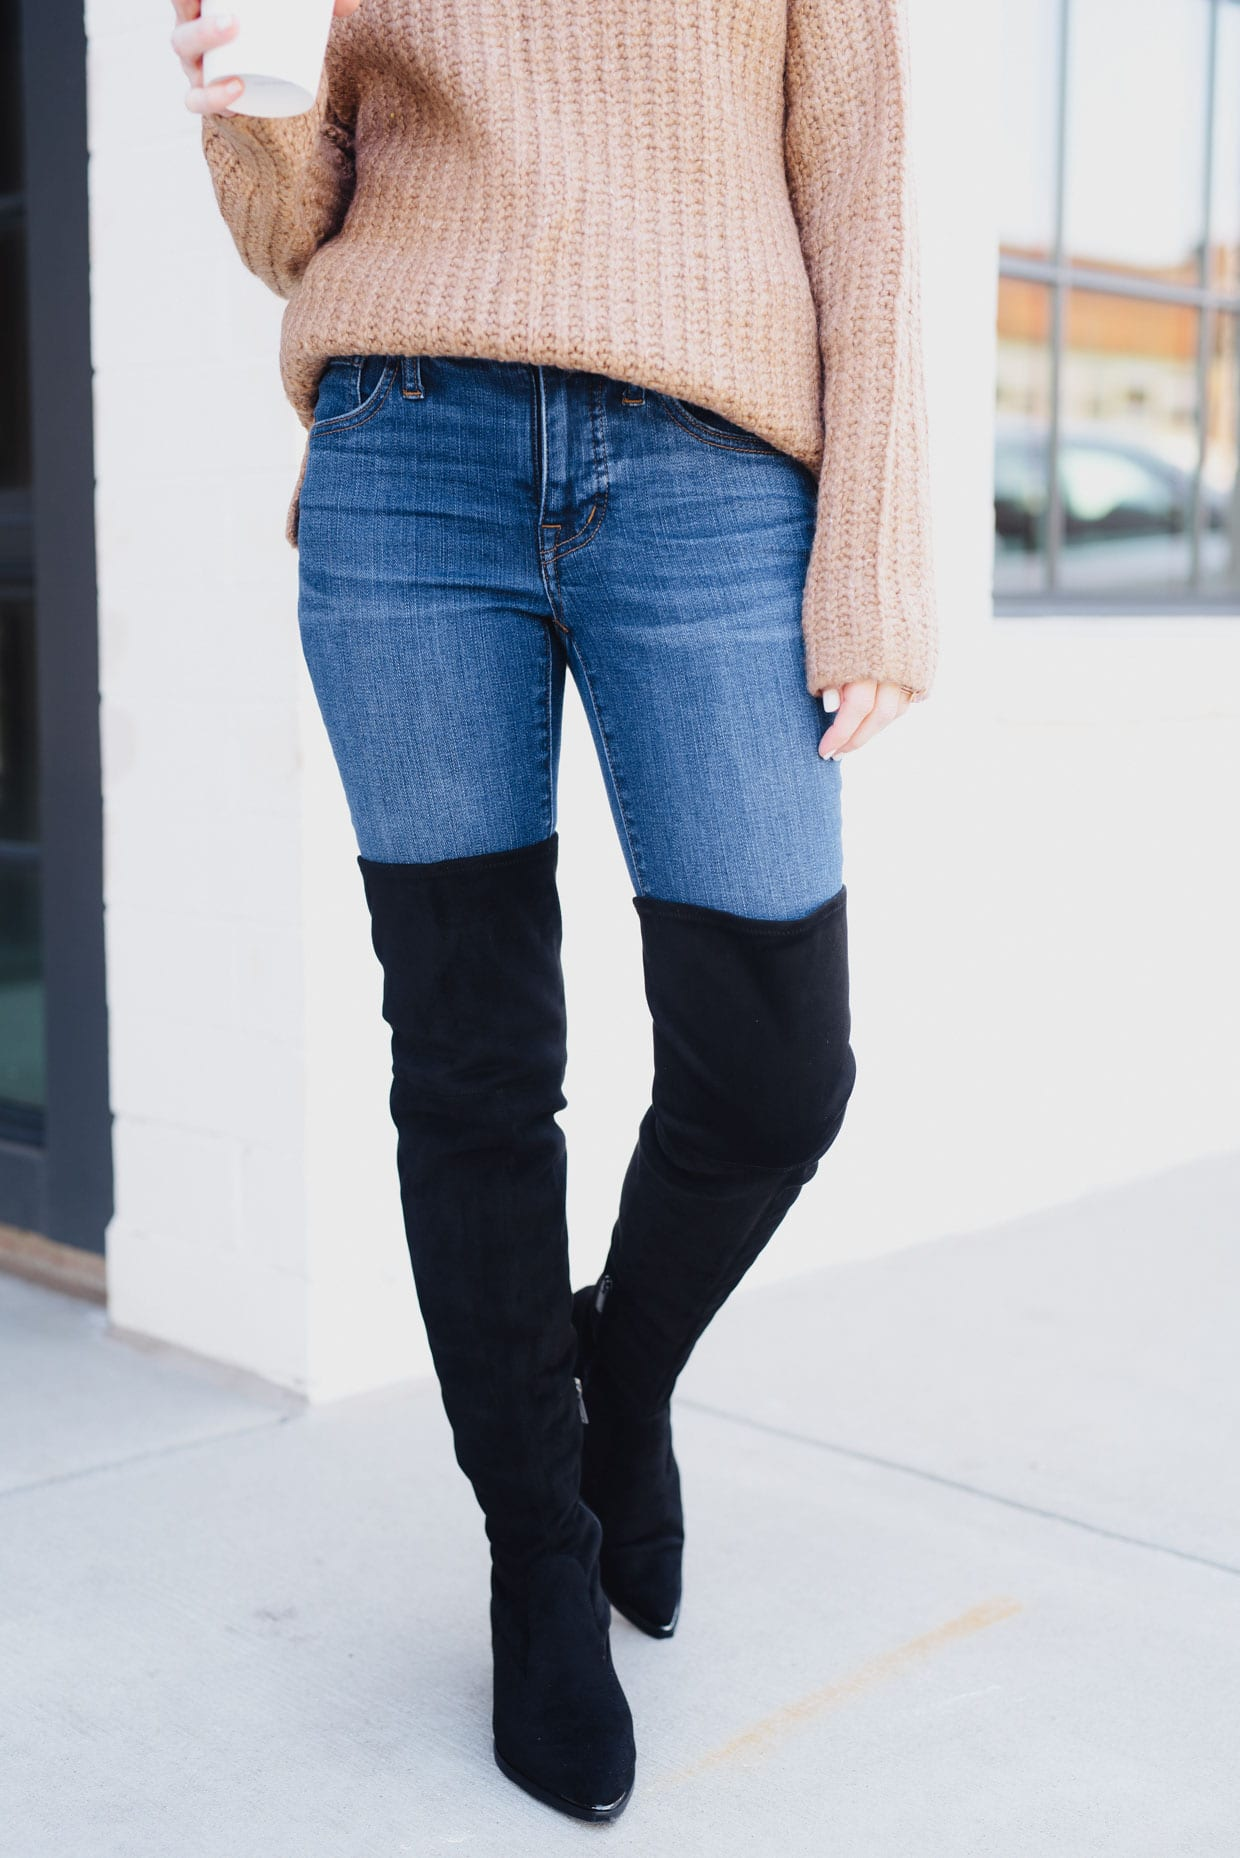 The Knee Boots When You're Petite